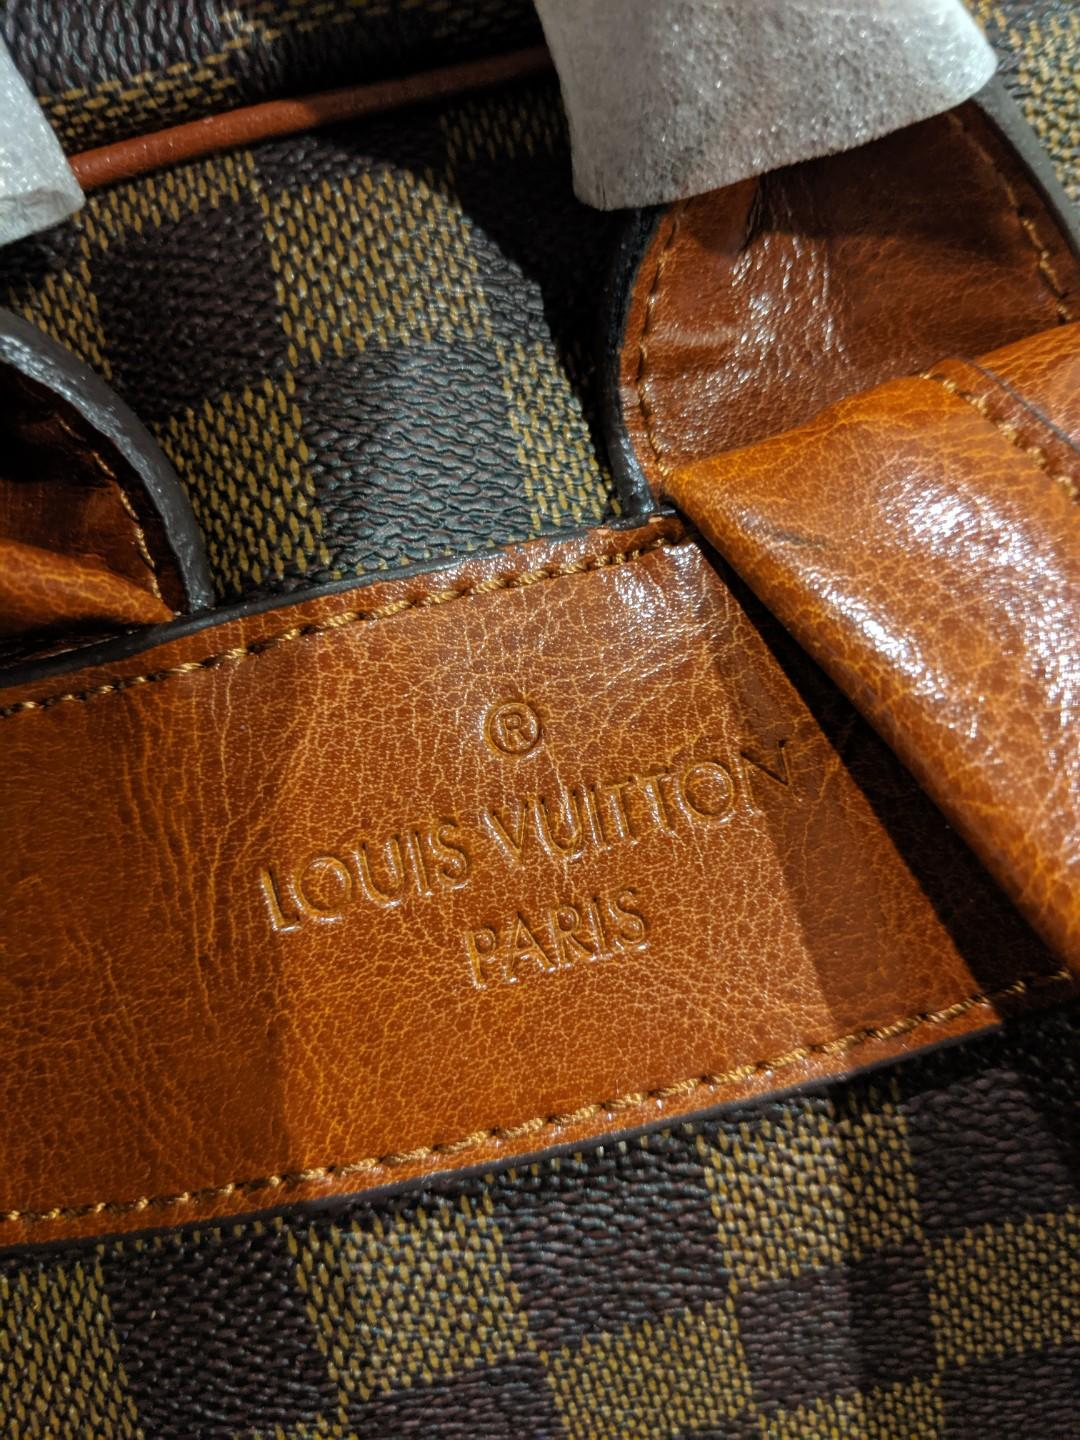 Louis Vuitton backpack in tan brown with gold zip closures